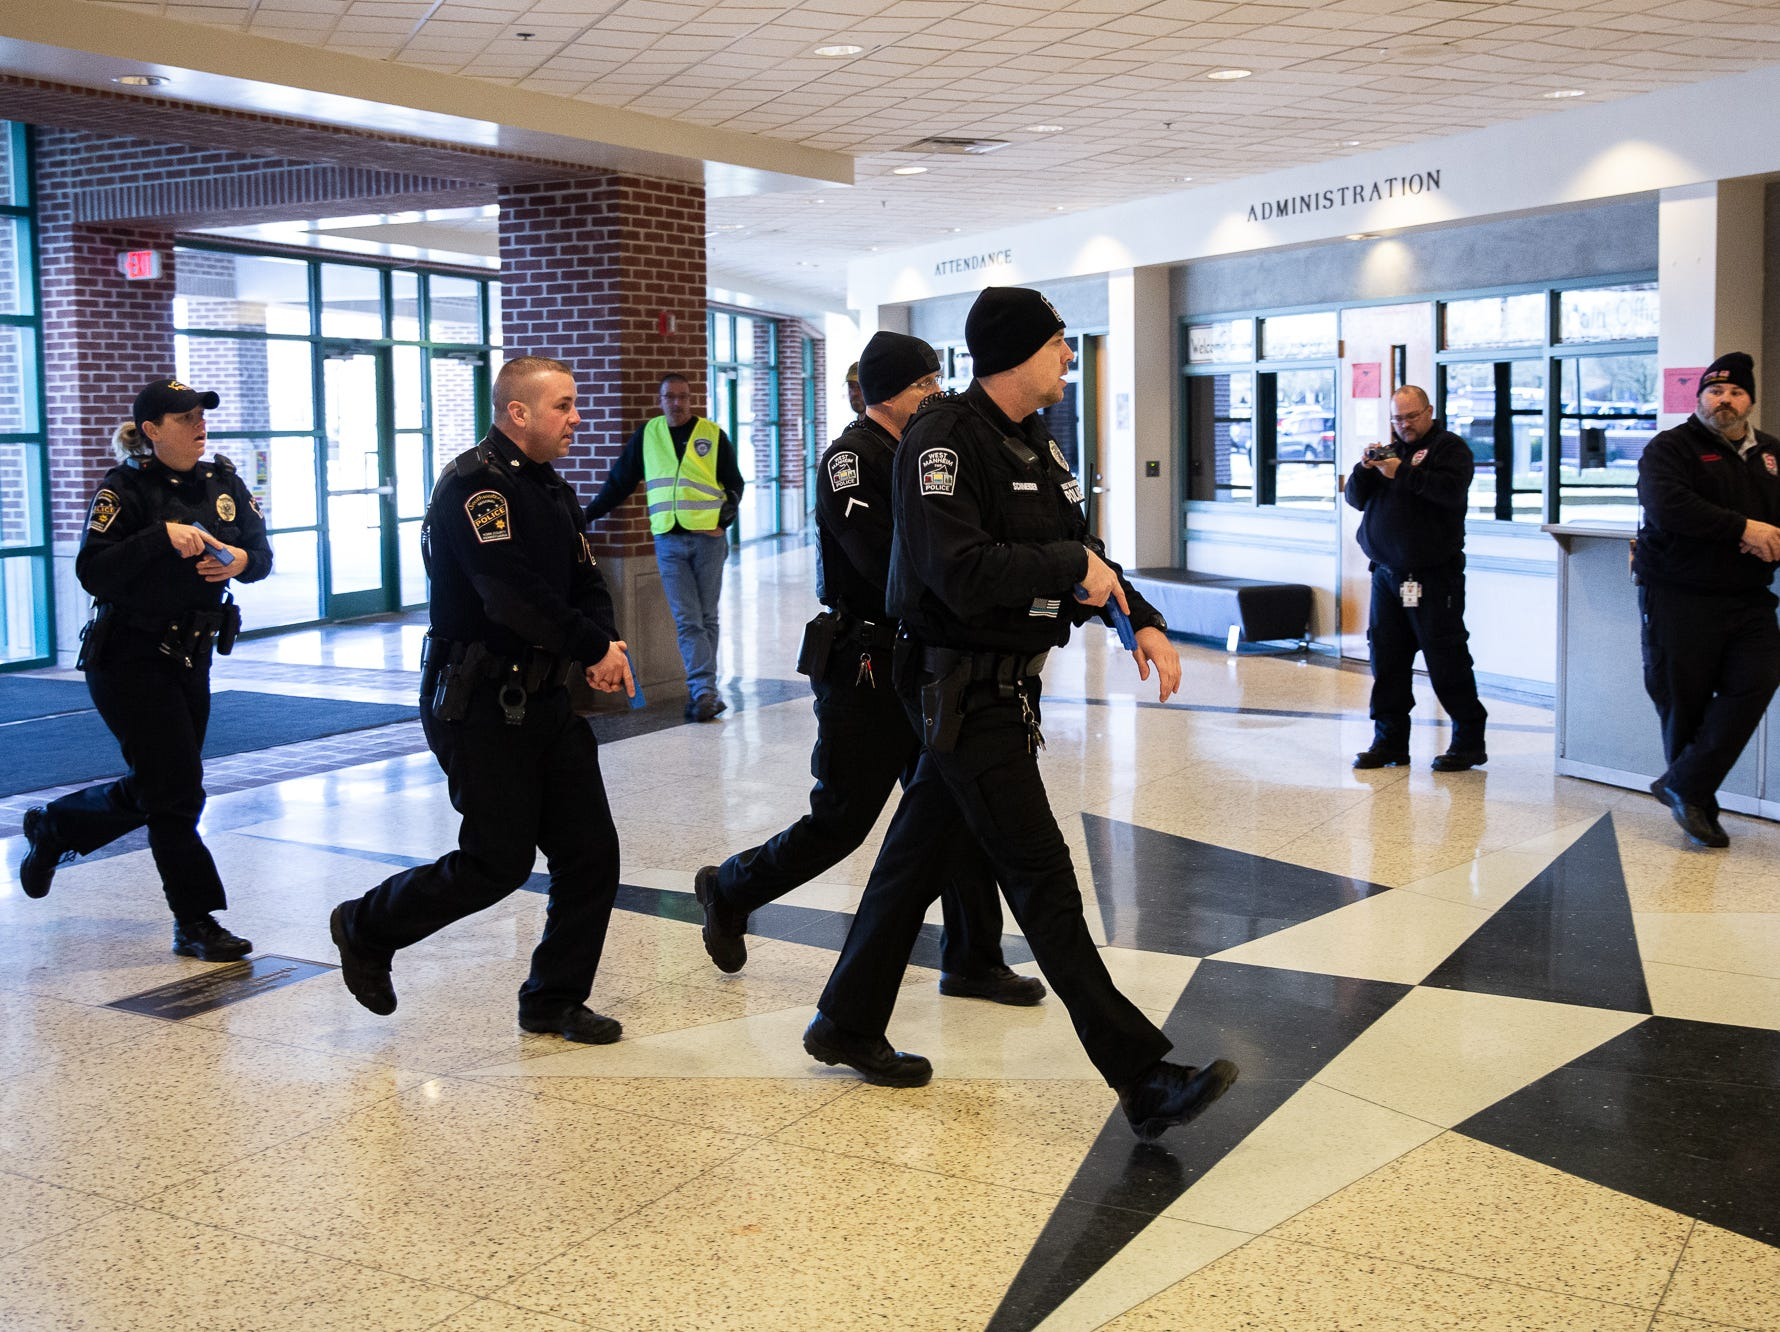 Police officers take part in an active shooter drill at South Western High School, Monday, Jan. 21, 2019, in Penn Township. The drill simulated multiple scenarios involving an active shooter, allowing school security and local law enforcement agencies a hands-on opportunity to drill on engaging an active shooter while also giving school staff experience with how real world scenarios could unfold.